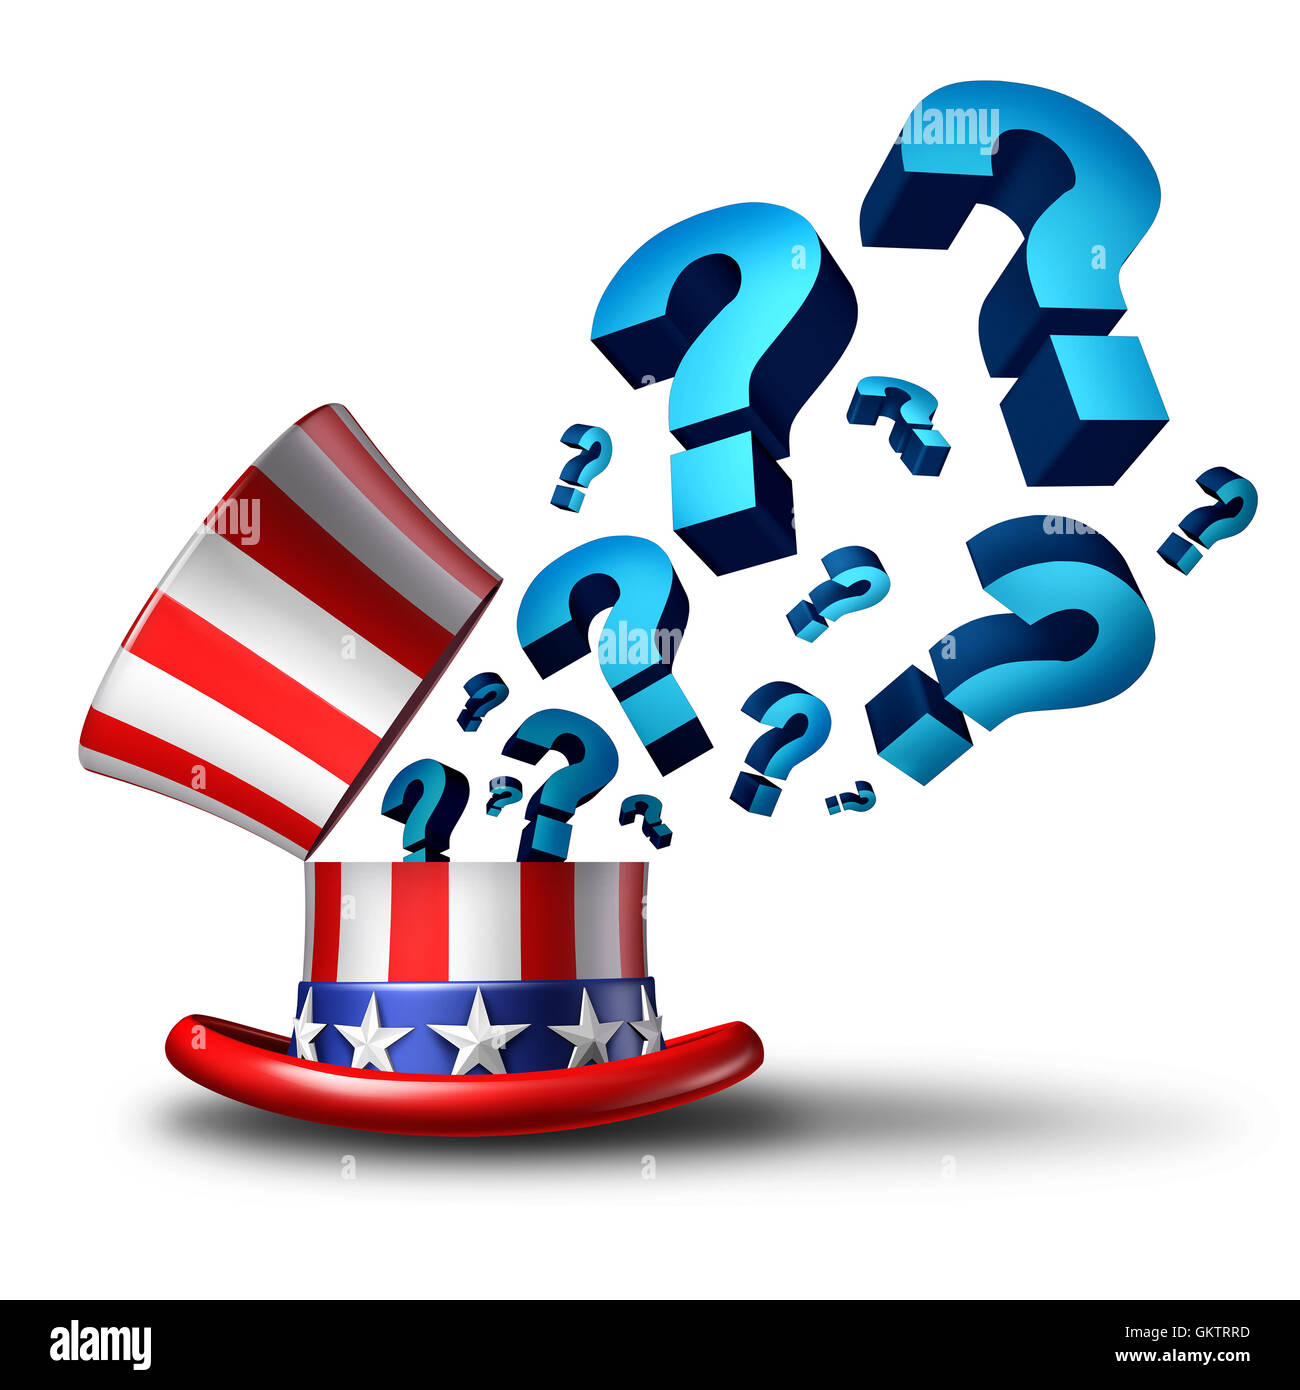 United States election question and American government questions as a 3D illustration representing policy and legislation - Stock Image